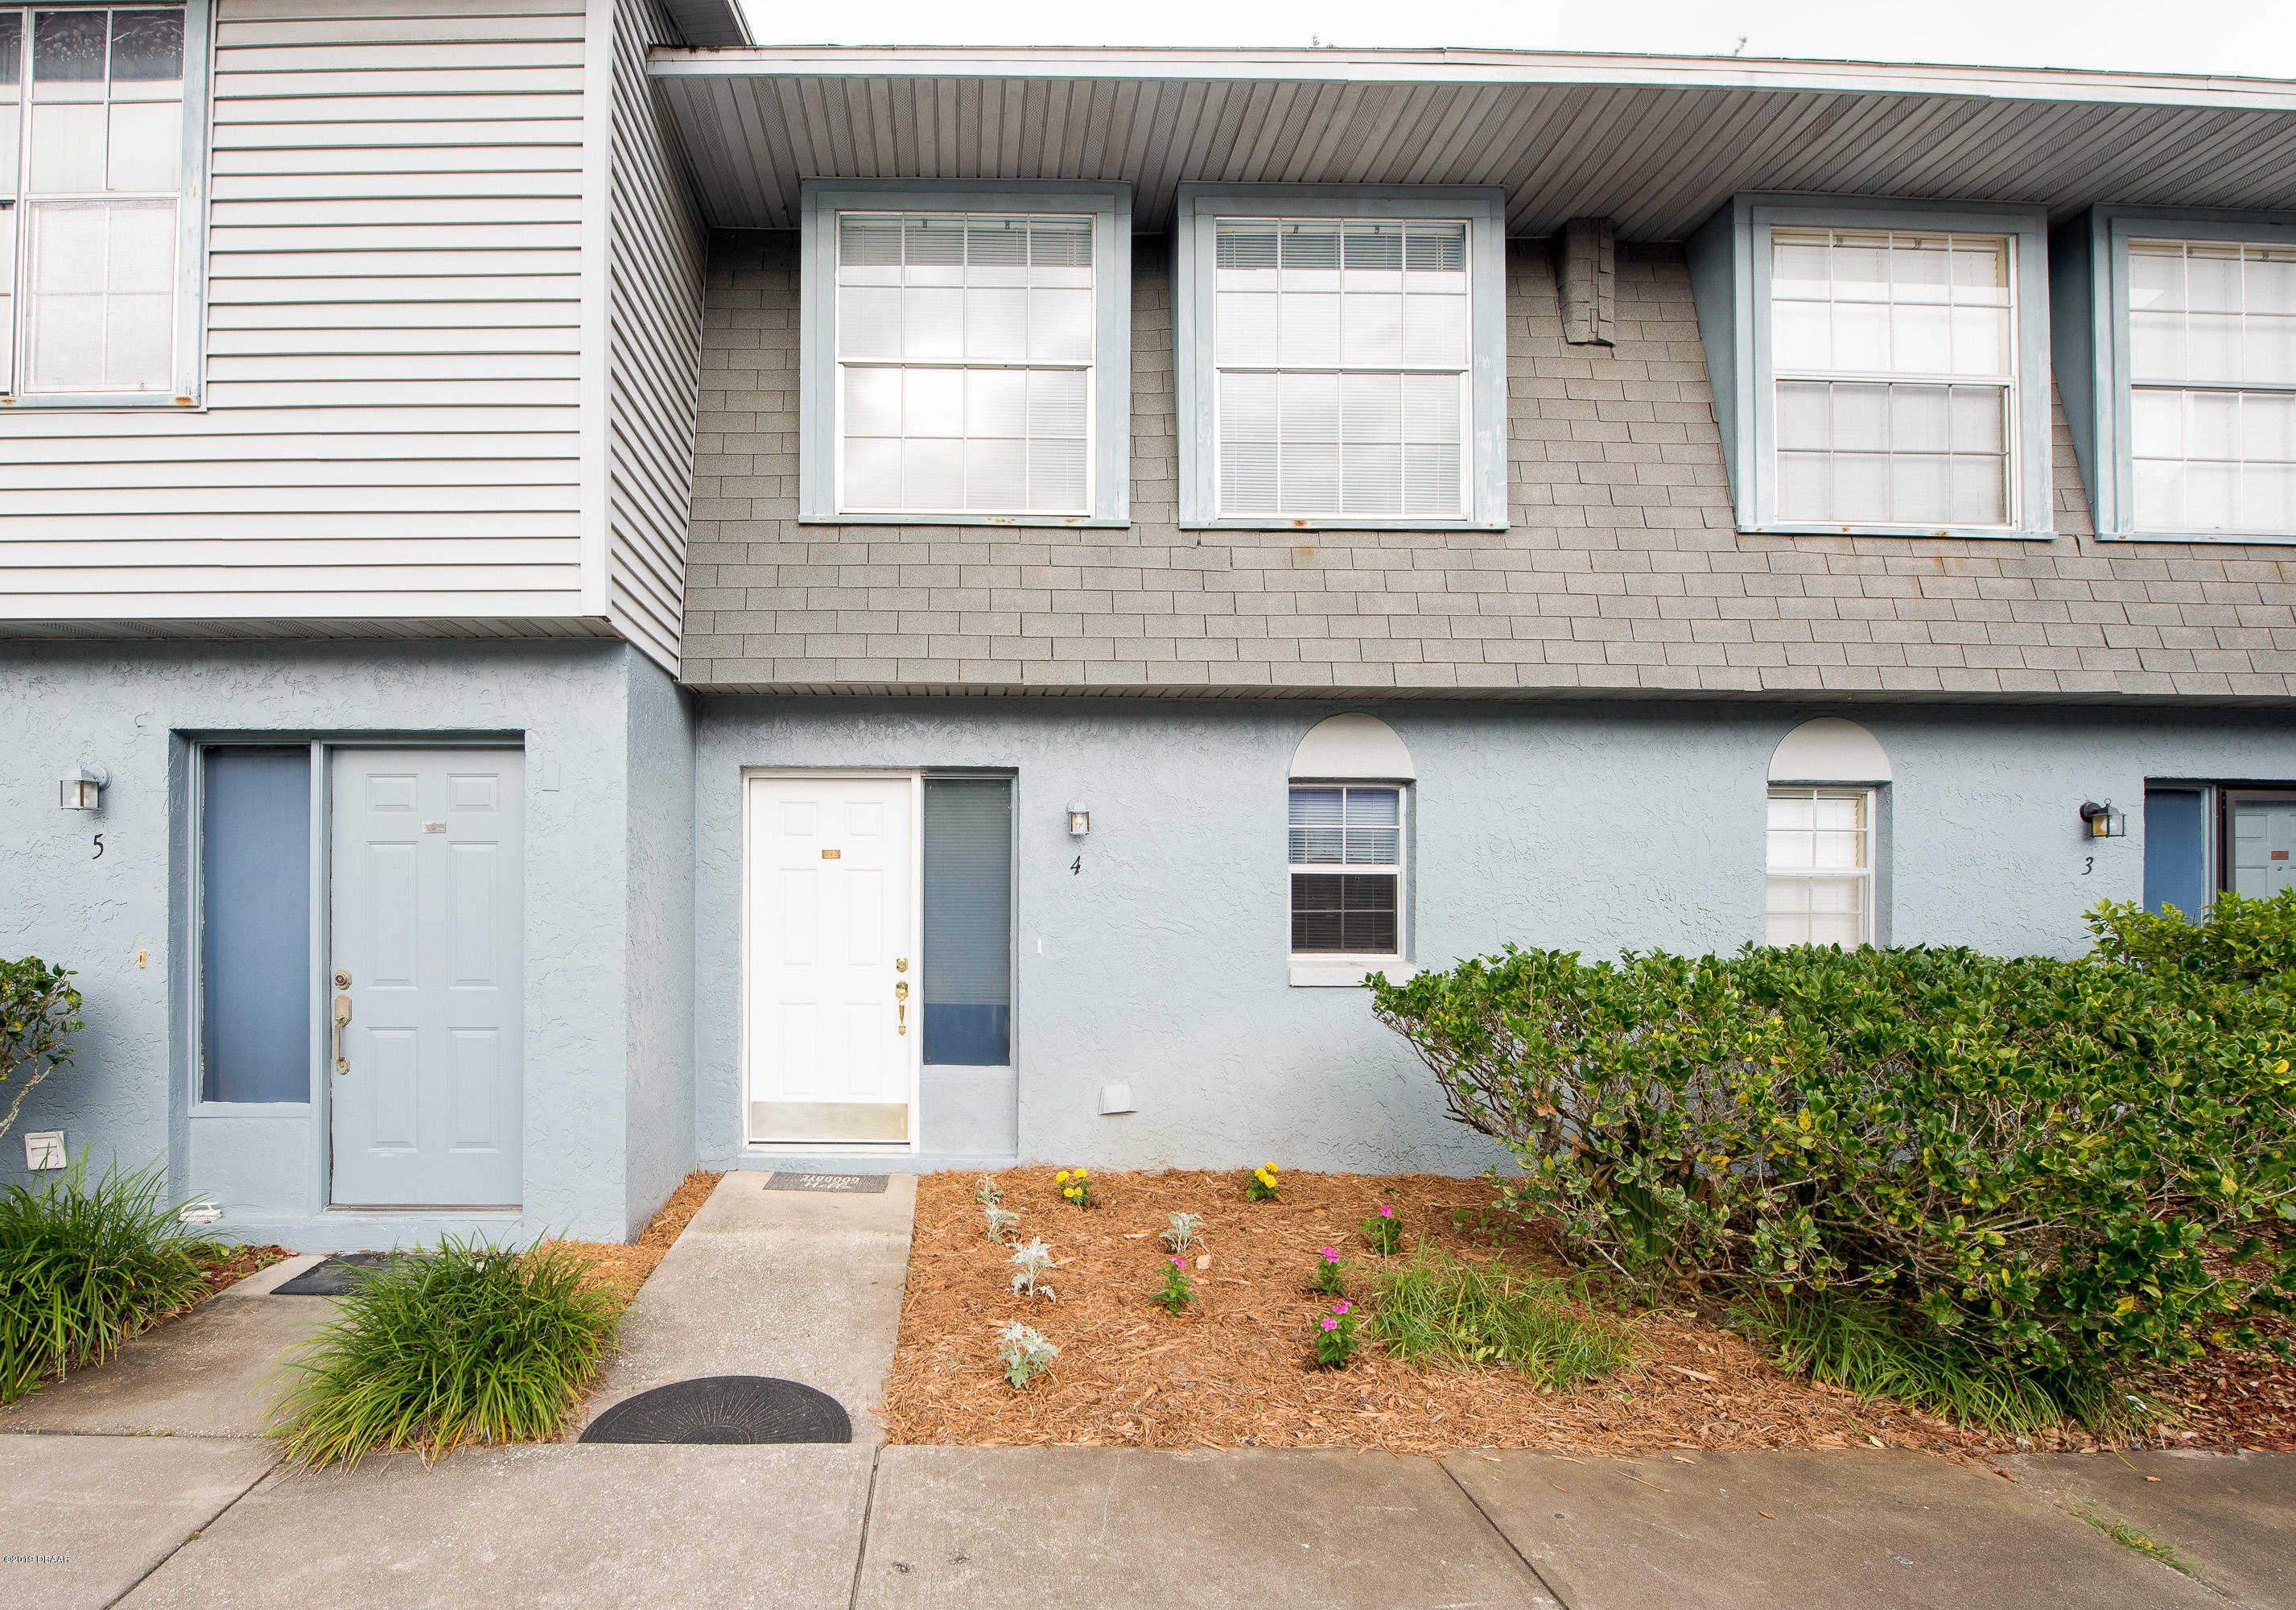 One of South Daytona 2 Bedroom Homes for Sale at 175 Yorktowne Drive